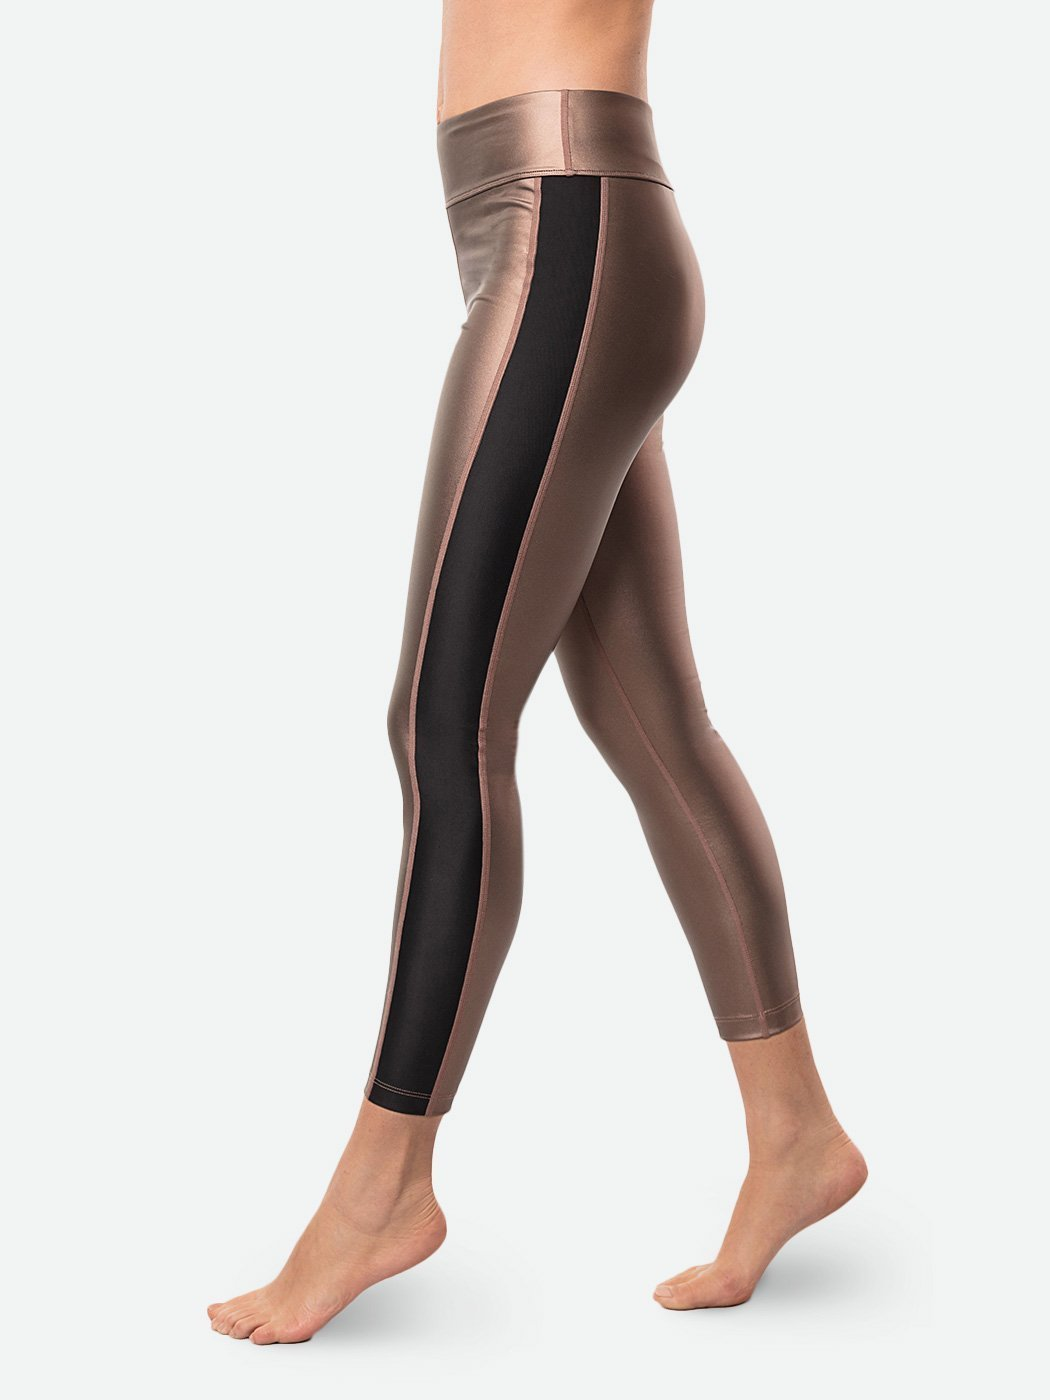 ENSMBL Bottoms Bronze Sol Tuxedo Legging Copper-Black / XS / ENSP6384